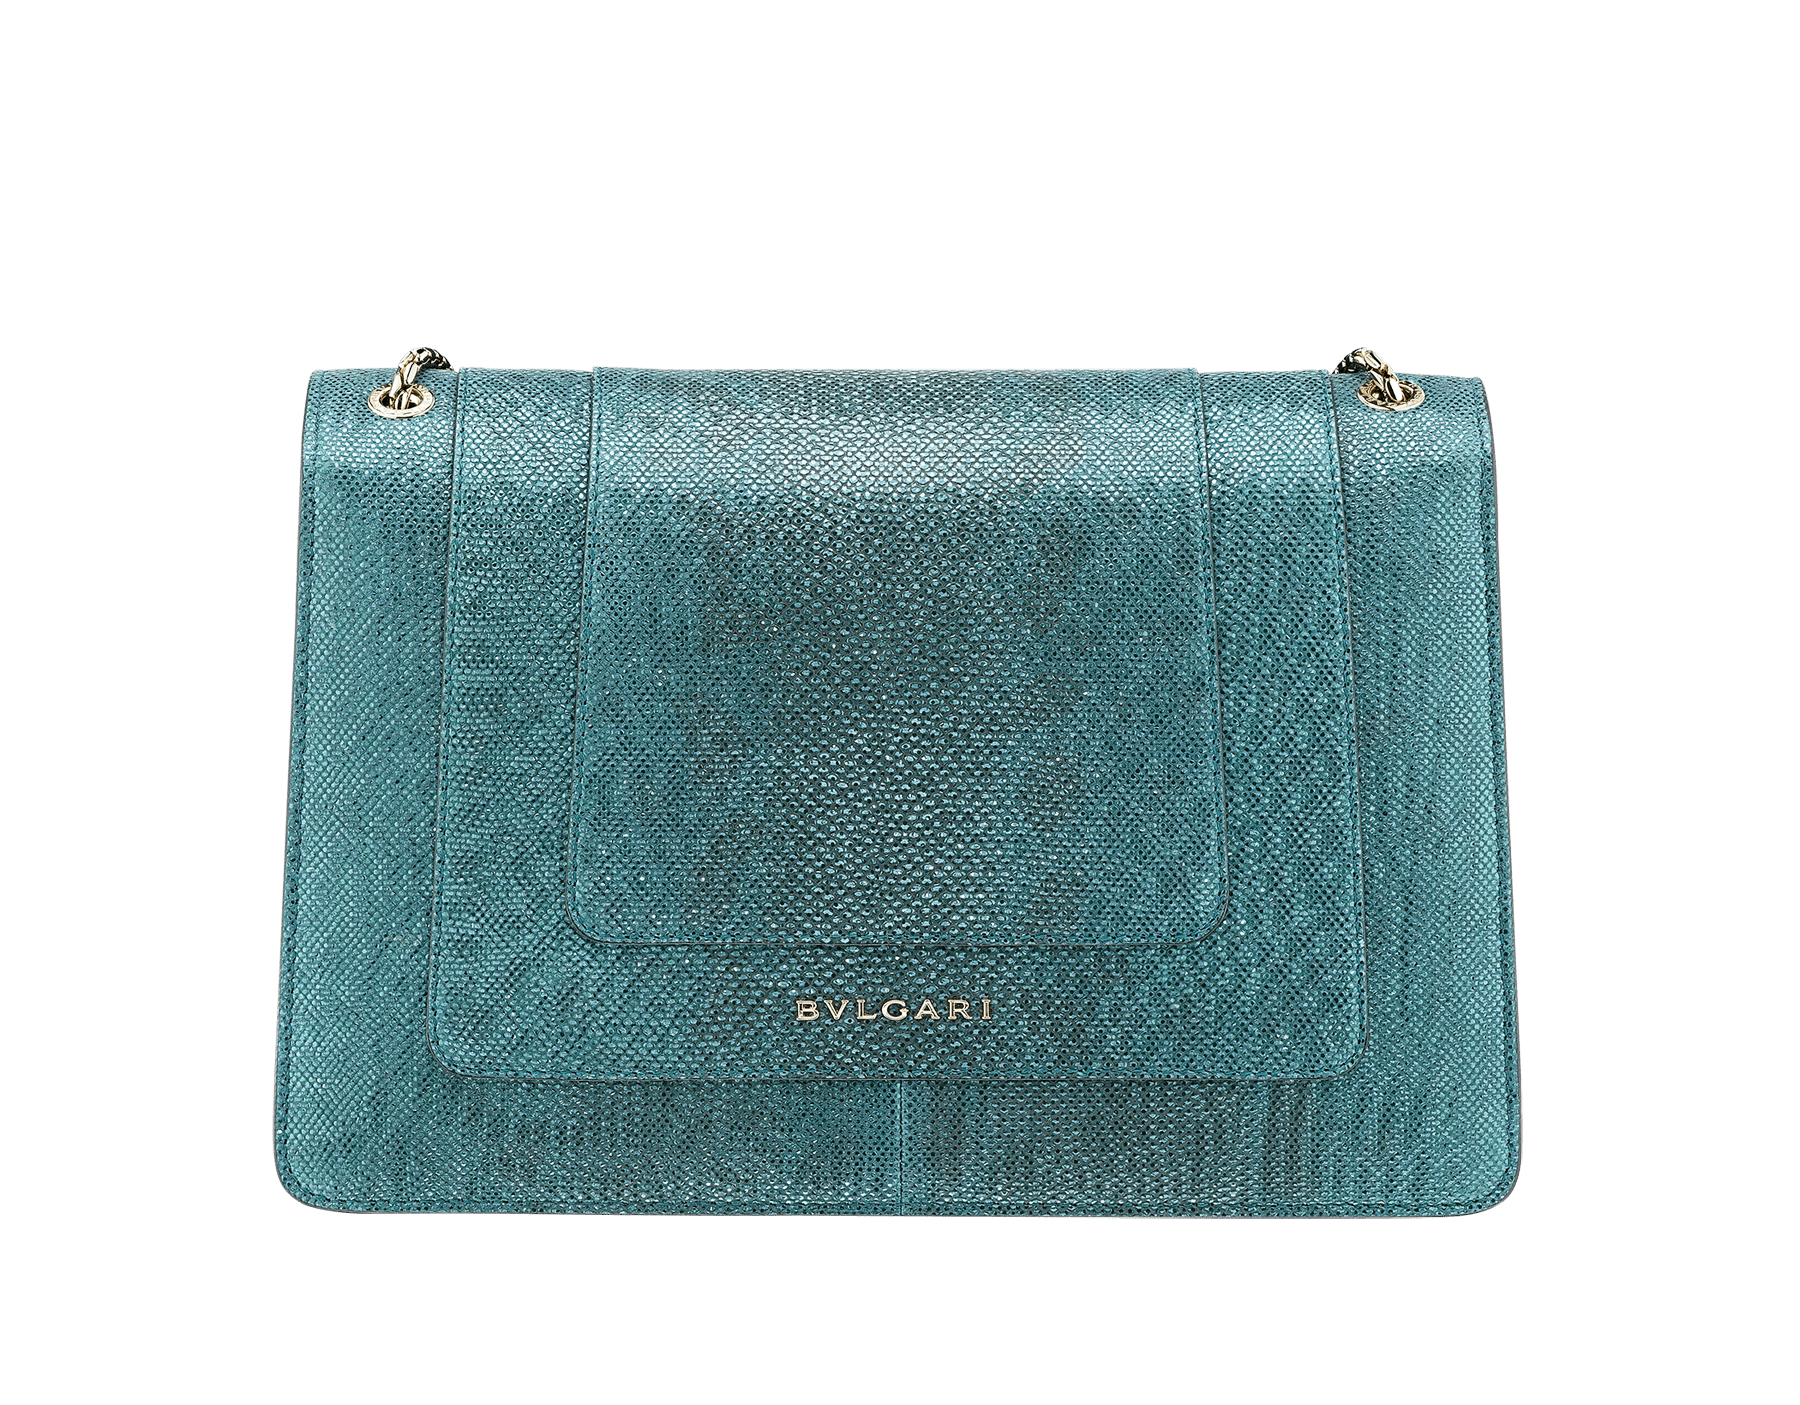 """""""Serpenti Forever"""" shoulder bag in deep jade metallic karung skin. Iconic snakehead closure in light gold plated brass enriched with black and glitter deep jade enamel and black onyx eyes. 287940 image 3"""